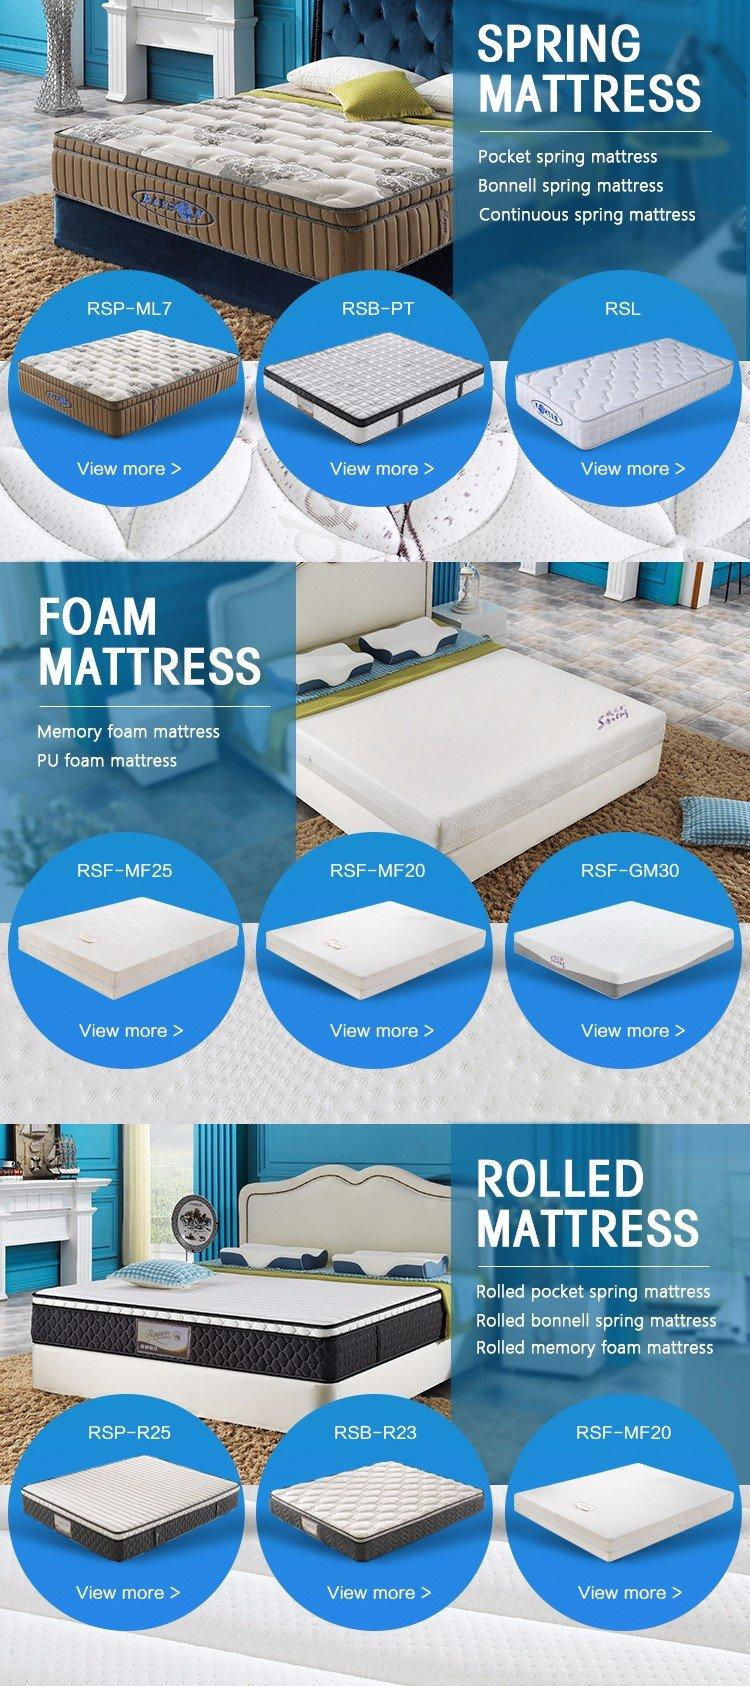 professional 4 Star Hotel Mattress outdoor Rayson Mattress company